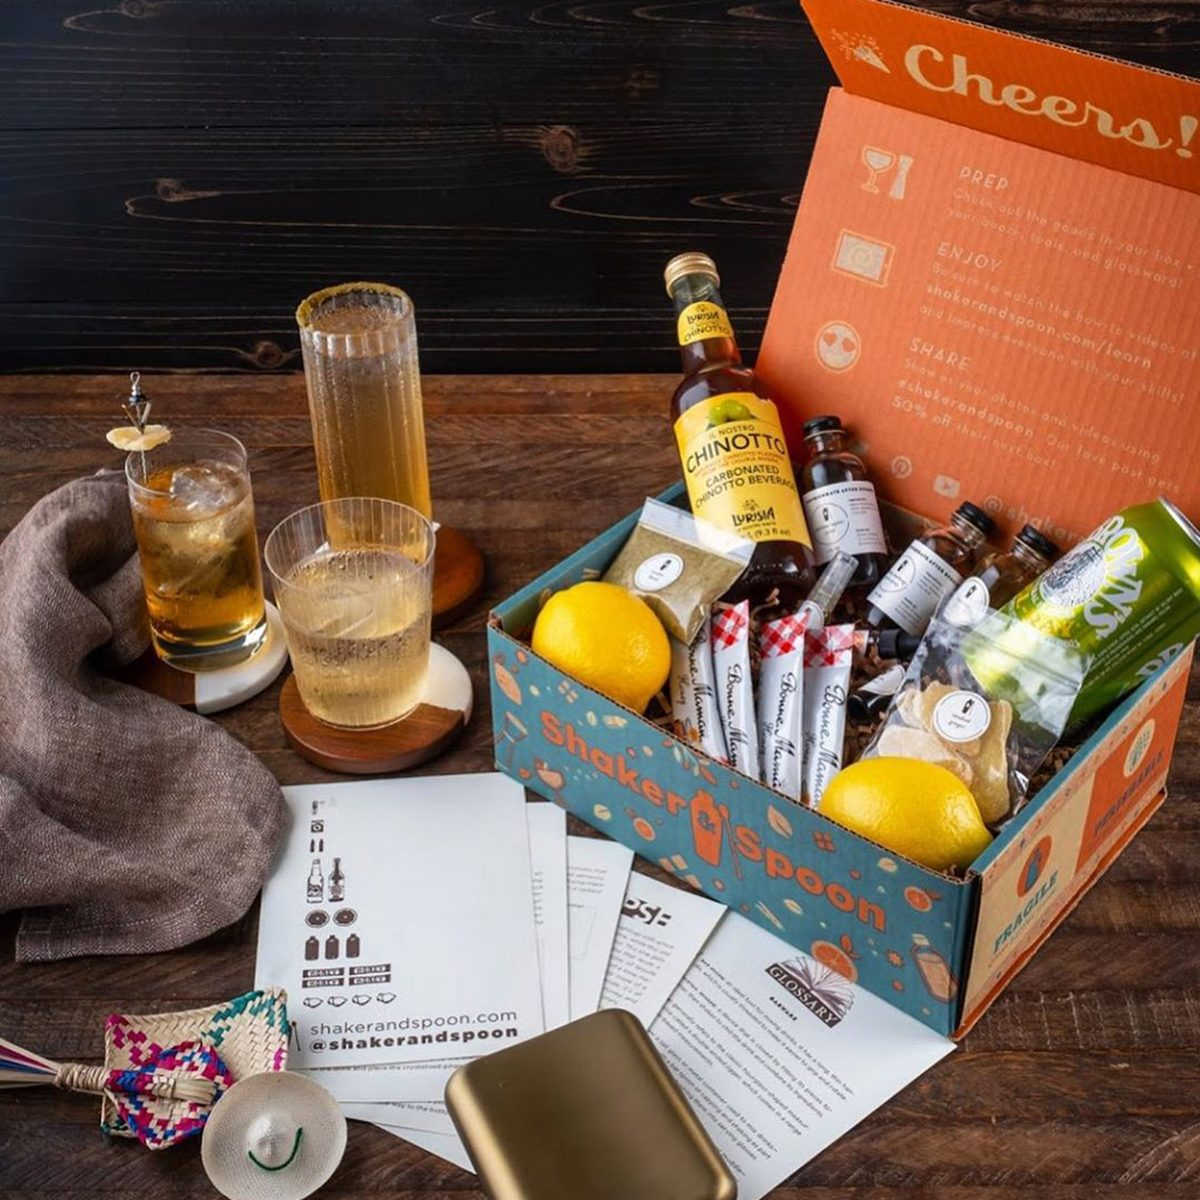 Shaker and Spoon subscription box